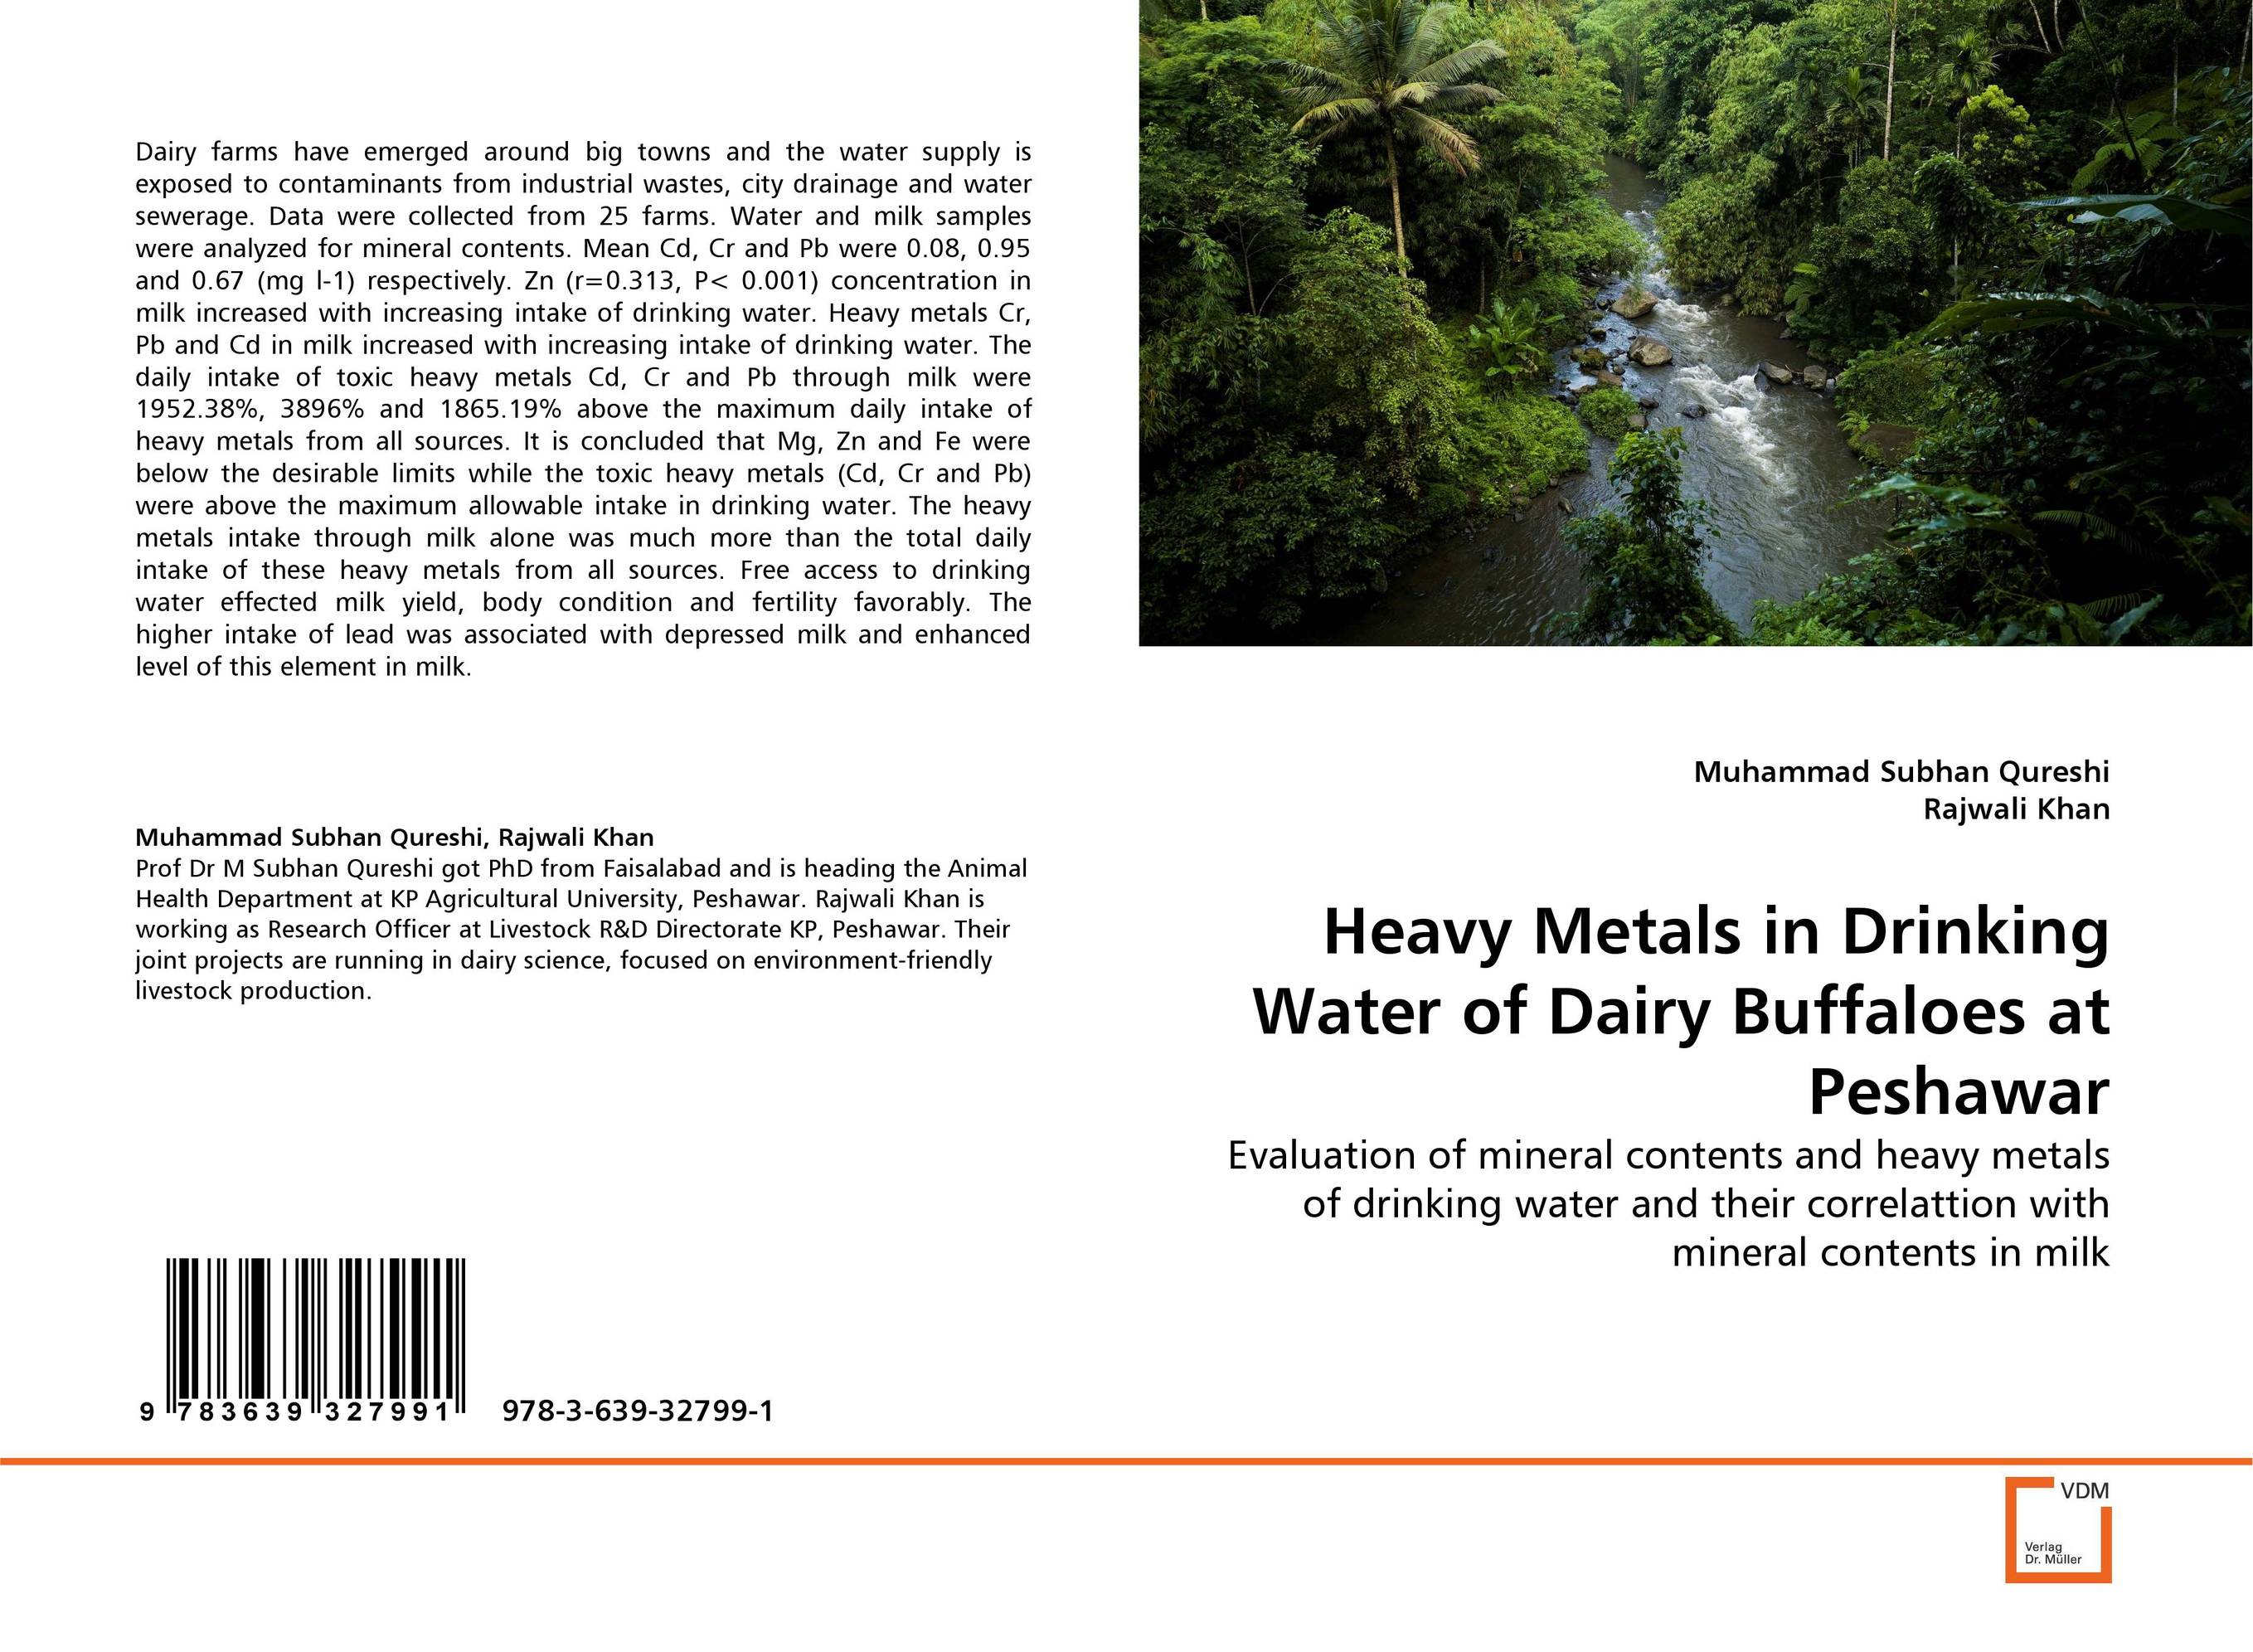 Heavy Metals in Drinking Water of Dairy Buffaloes at Peshawar current fertility status in cattle of mini dairy farms